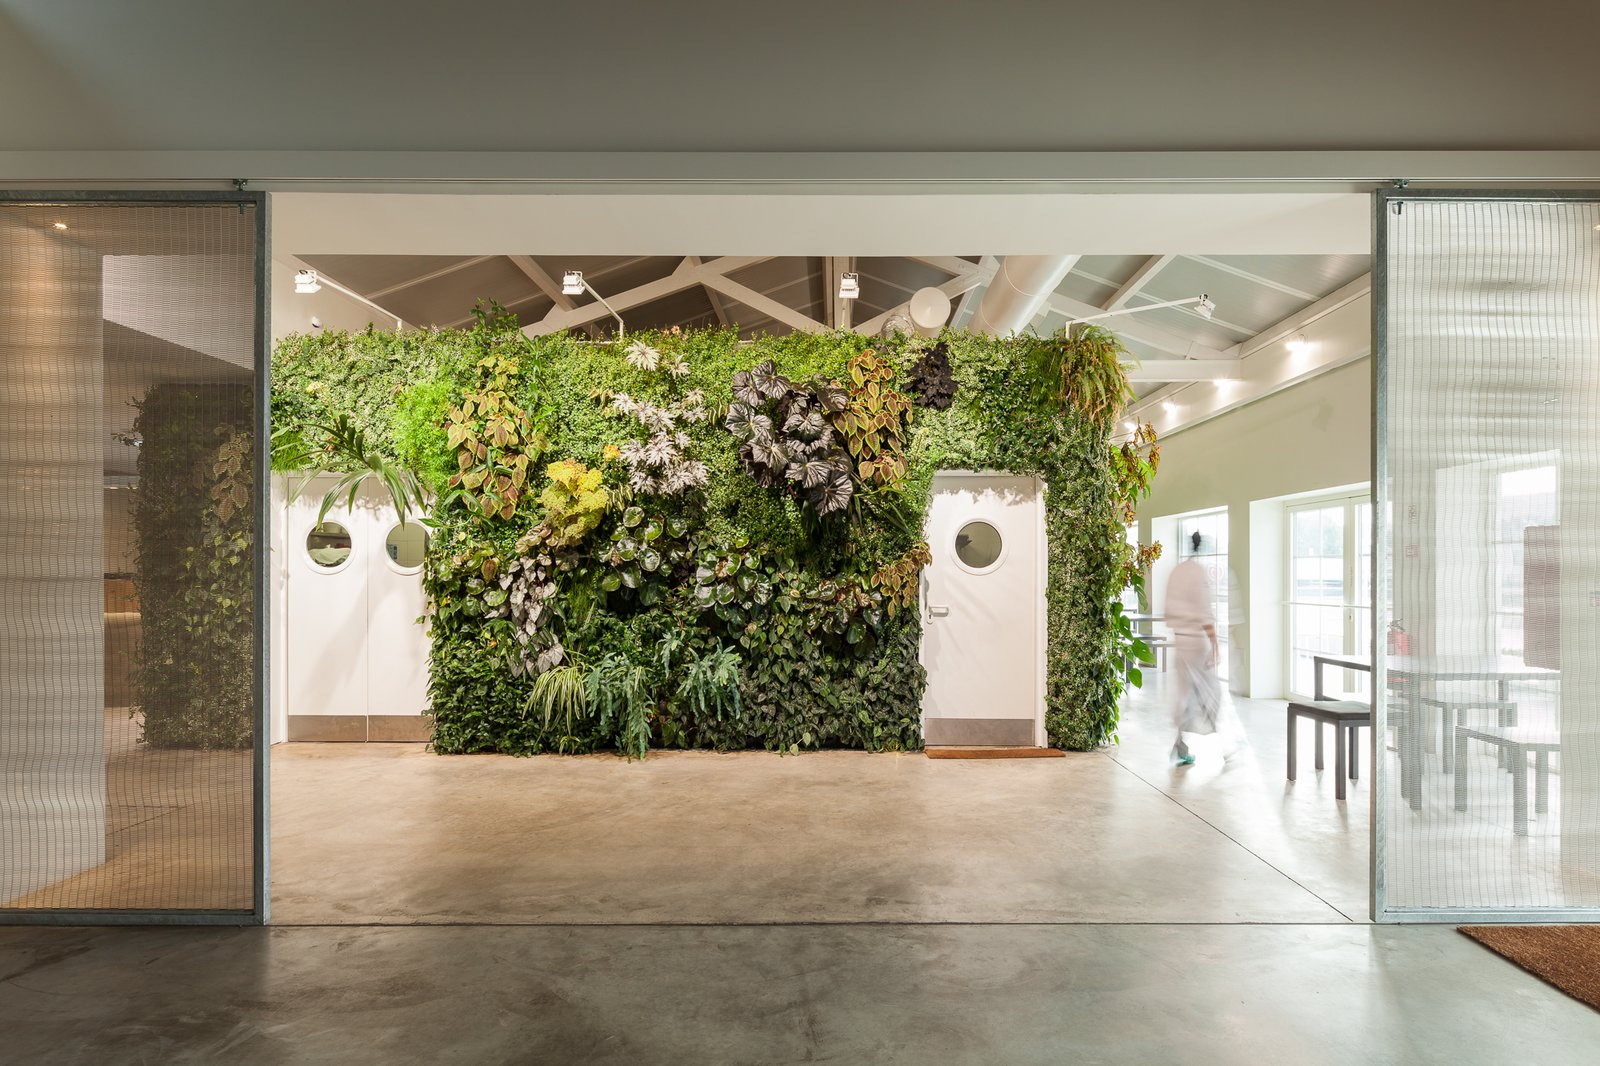 Doors, Interior, Metal, and Sliding Door Type Overall, the plant wall covers over 1,200 square feet of surface area.  Photo 3 of 6 in Vertical Gardens Spruce Up a Dusty Monument